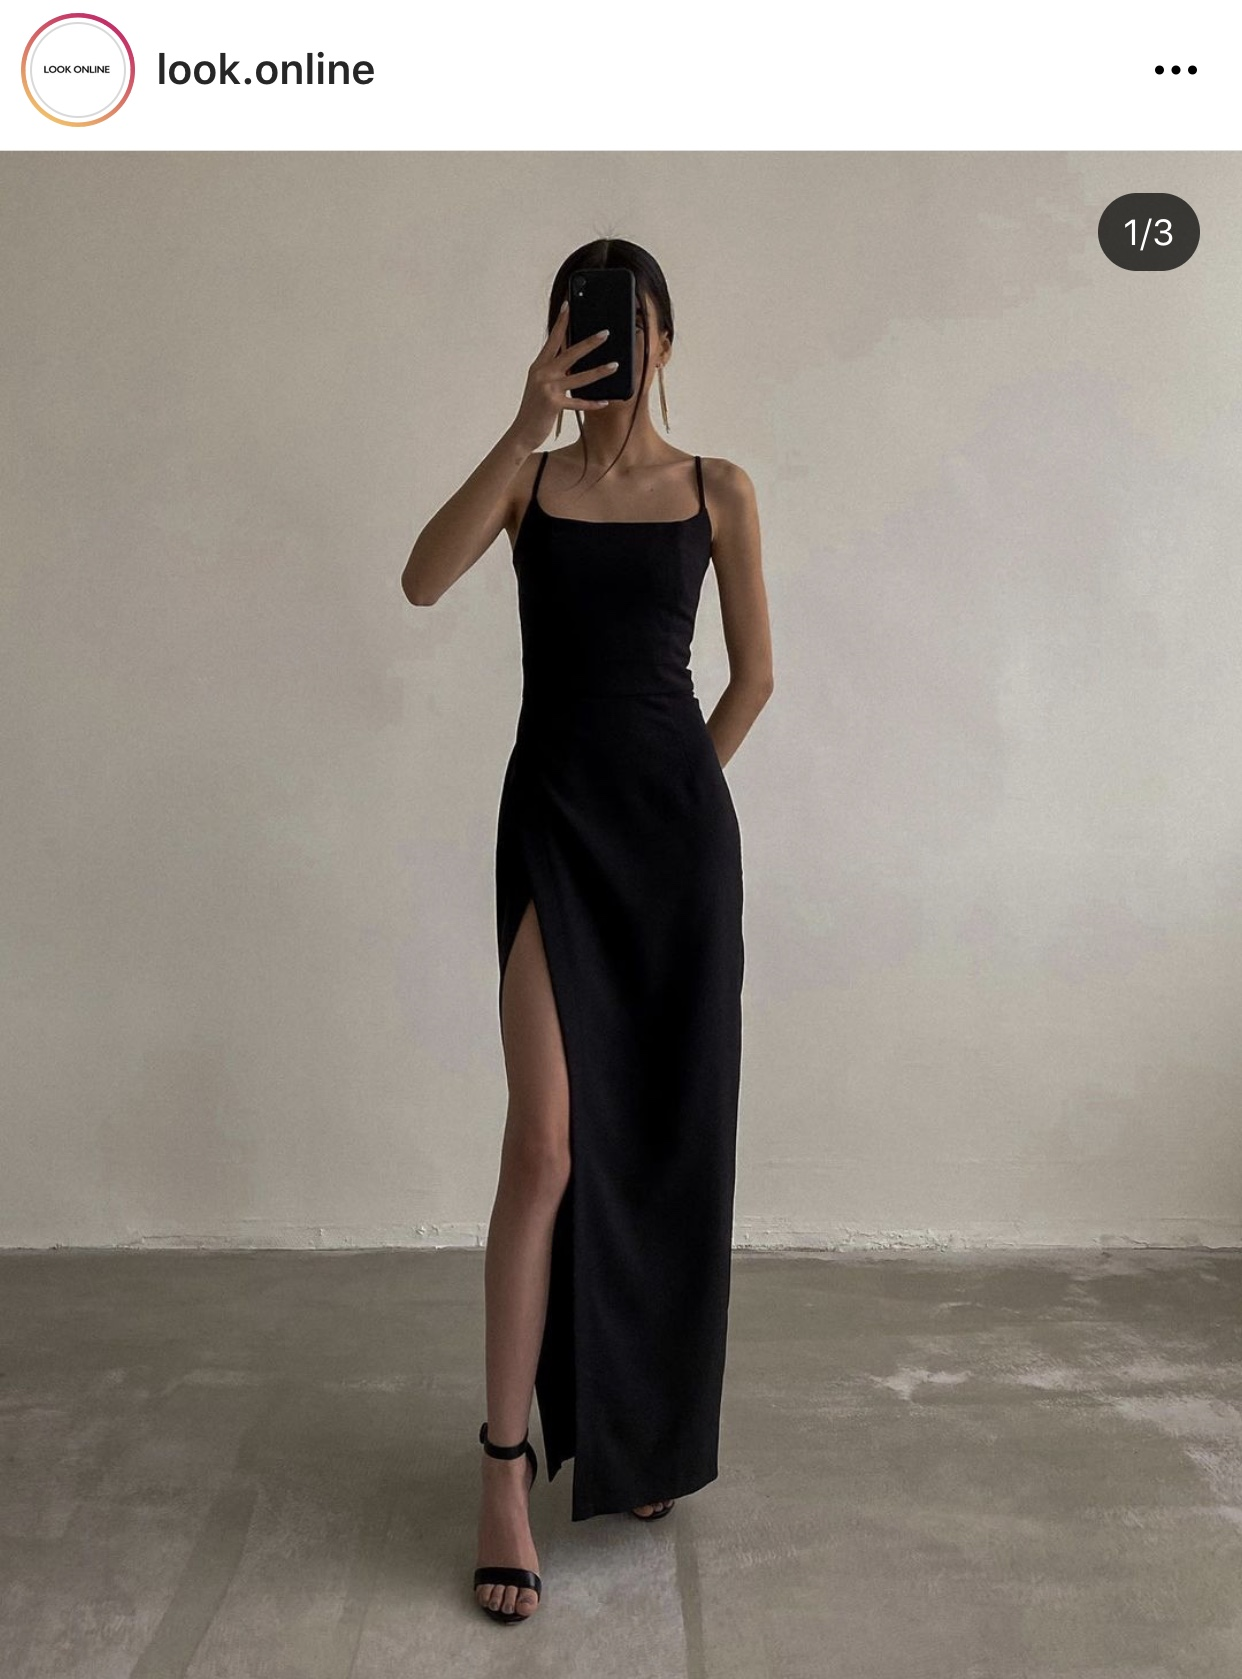 <p>We need women&#39;s clothing that is fashionable, stylish, modern. For example, as in a store: Look Online, Mango, Lime, Zara. We buy once a week. We are a store that has just opened, respectively, the turnover will increase, at the moment the purchase is from 100-300 thousand rubles.</p>